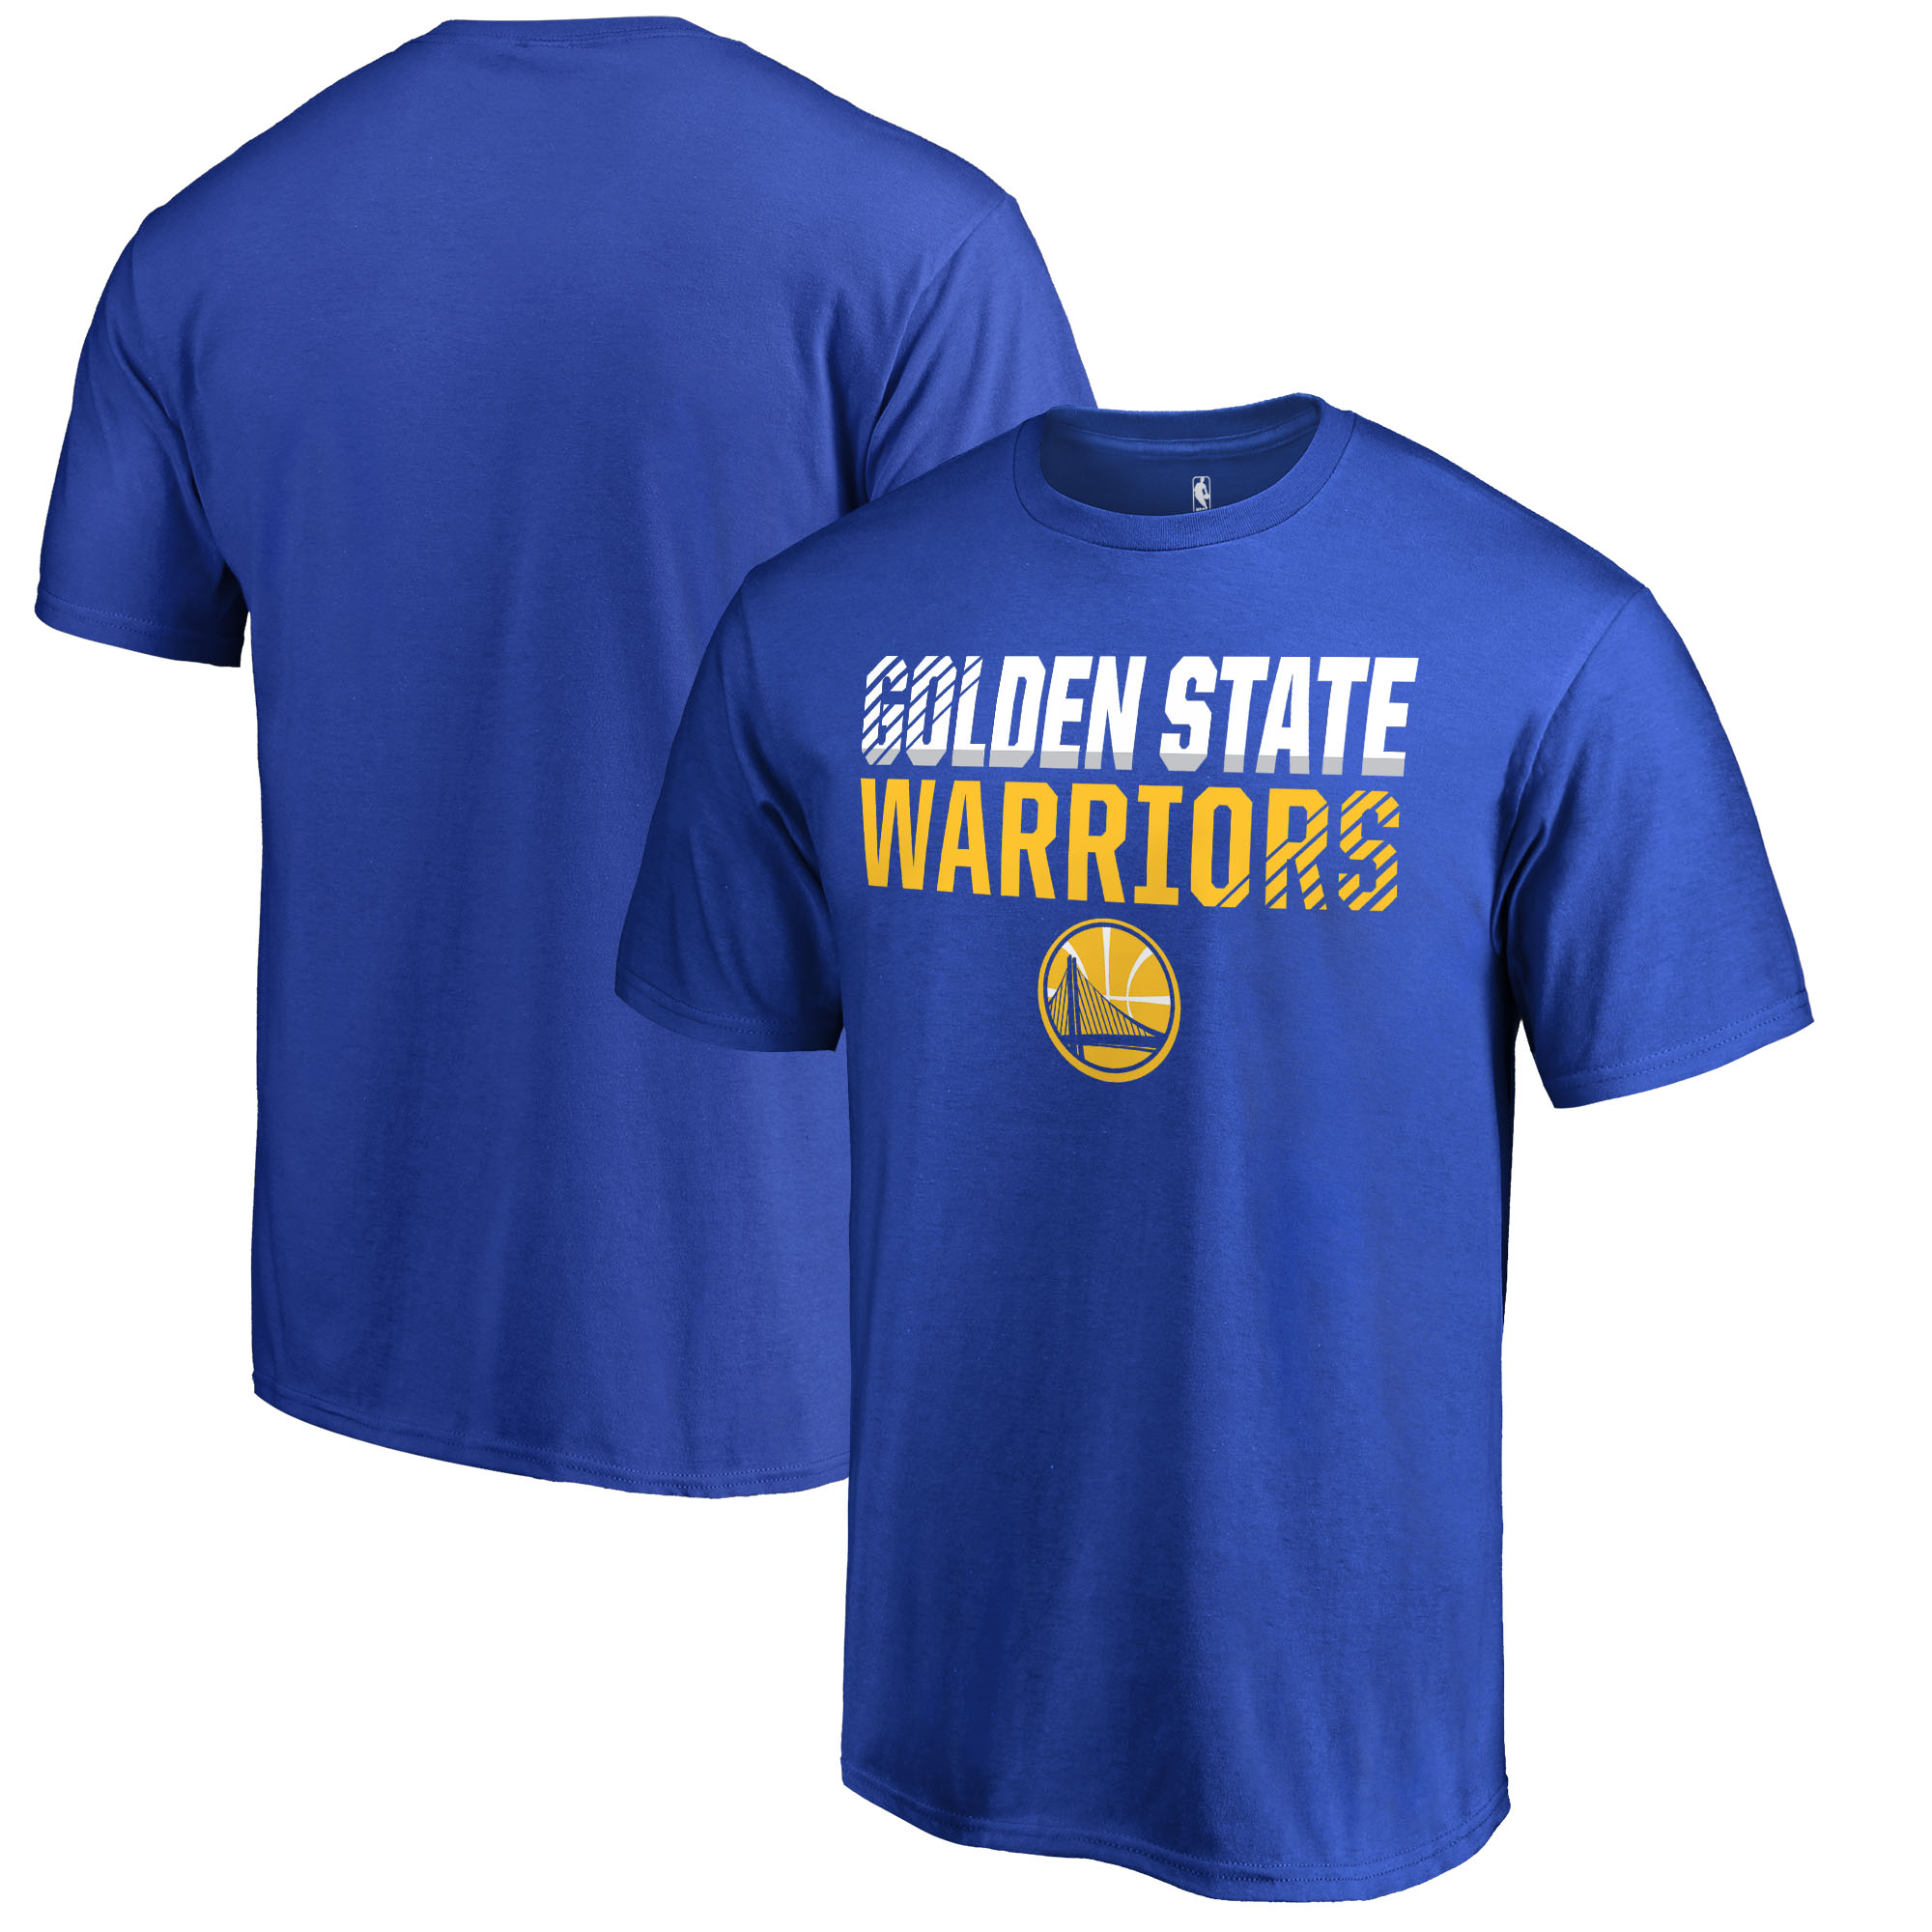 Golden State Warriors Fanatics Branded Fade Out Big and Tall T-Shirt - Blue